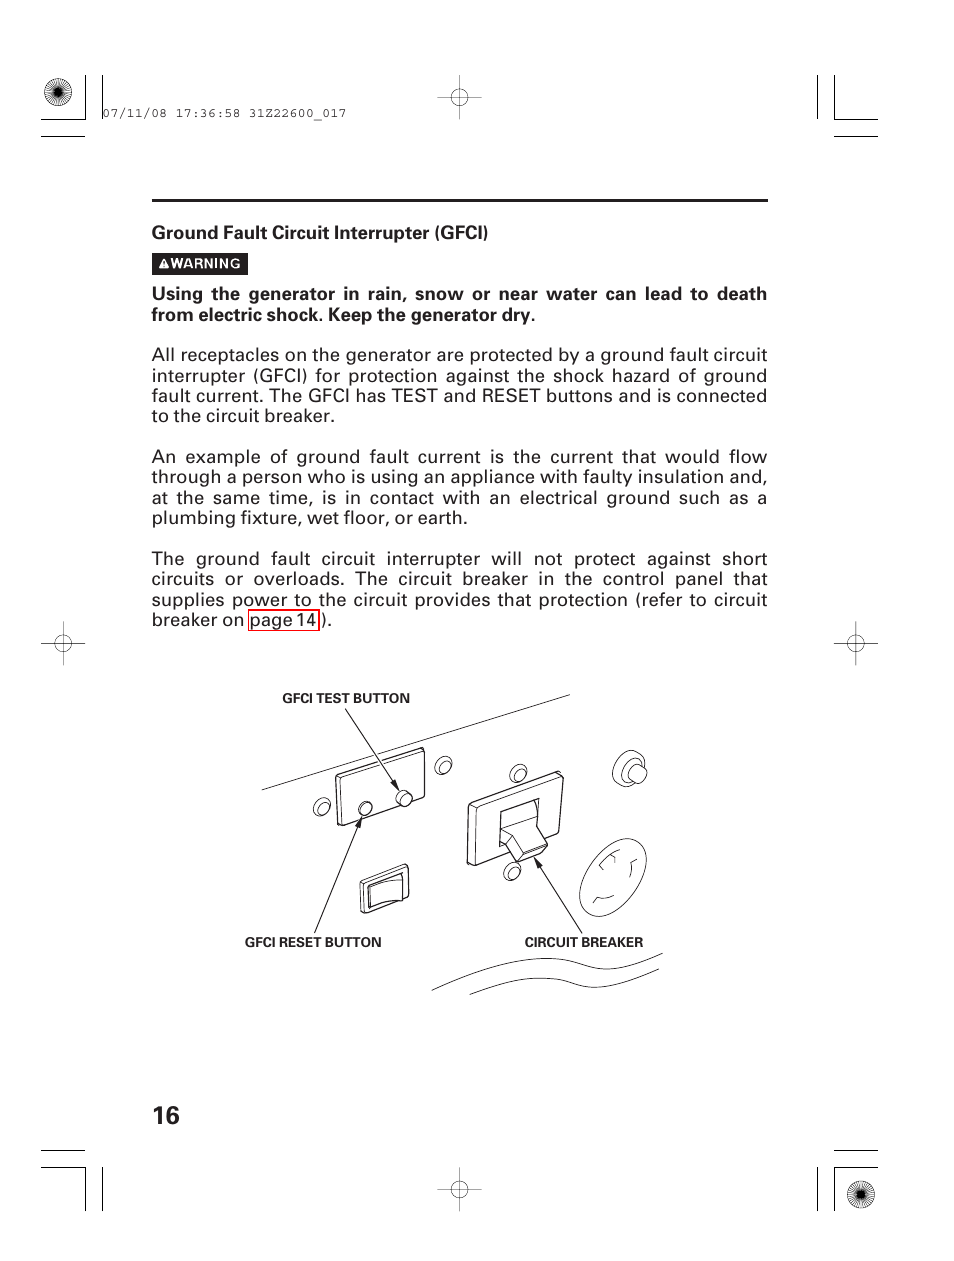 Ground Fault Circuit Interrupter Honda Eb5000x User Manual Page Gfci Breaker As Well 18 71